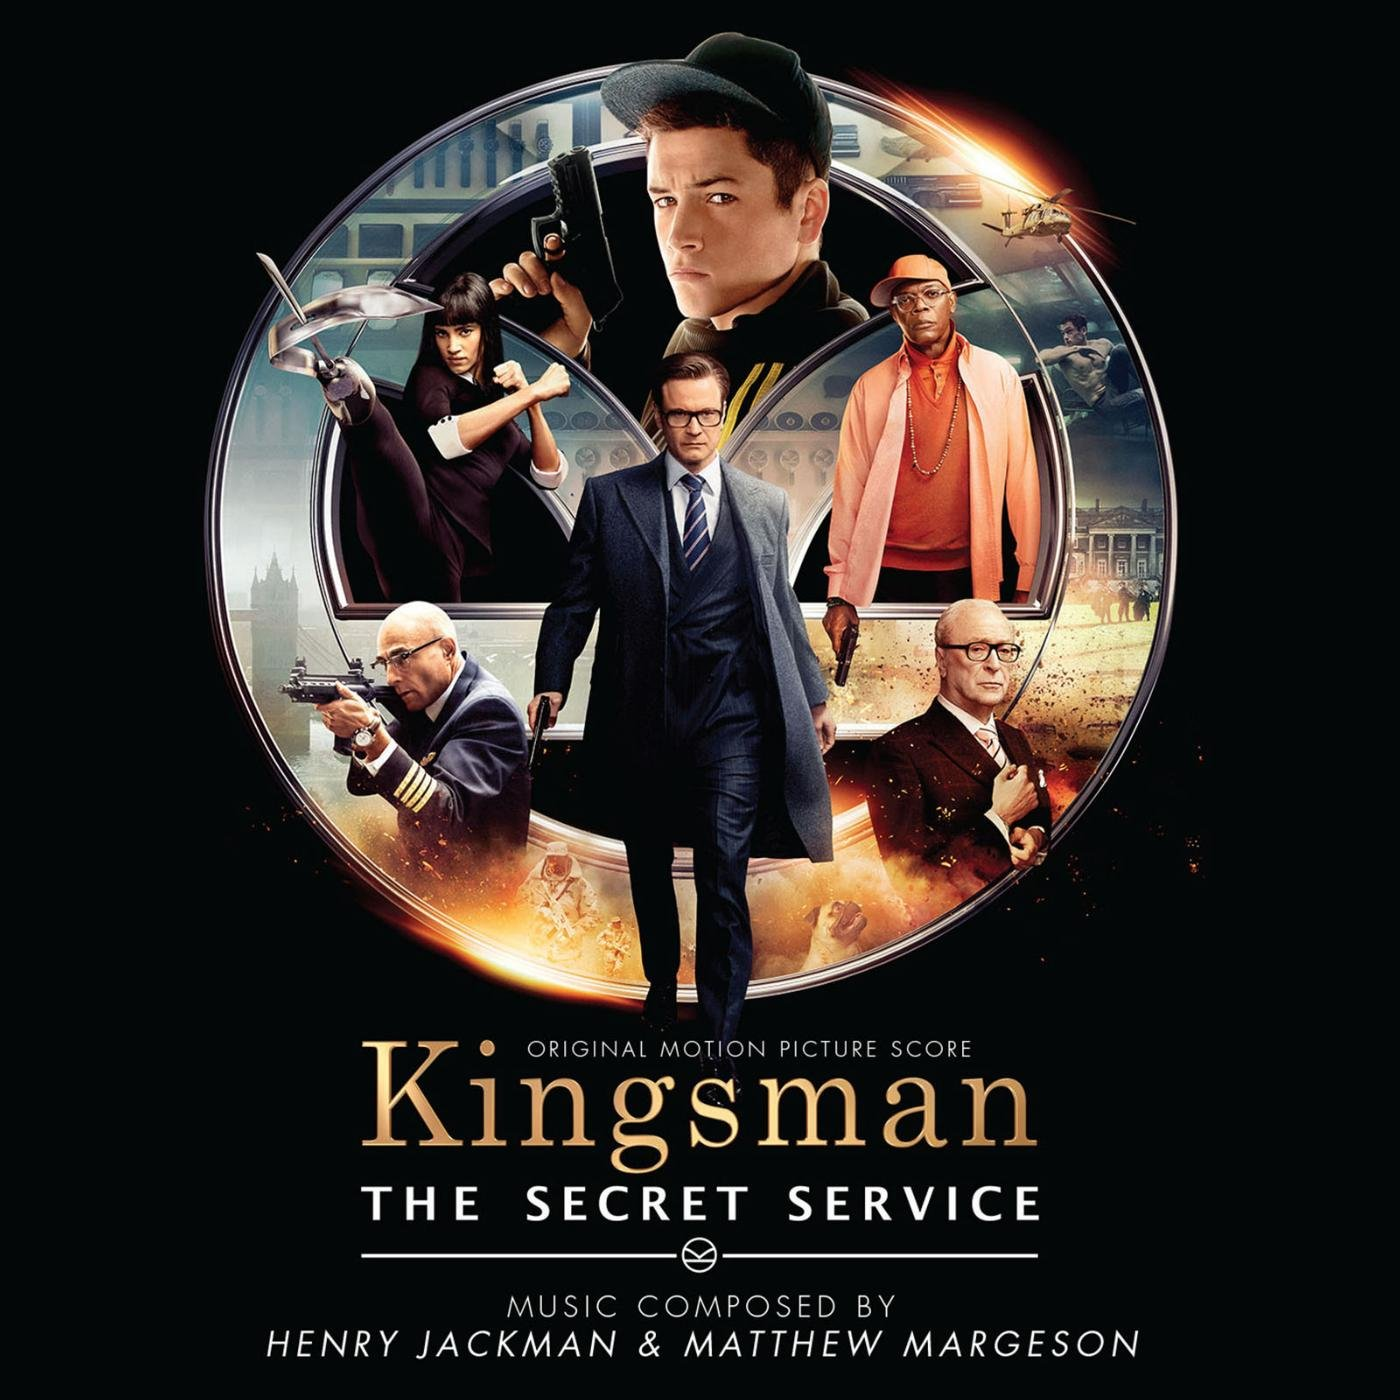 bande originale soundtrack ost score kingsman services secrets disney fox